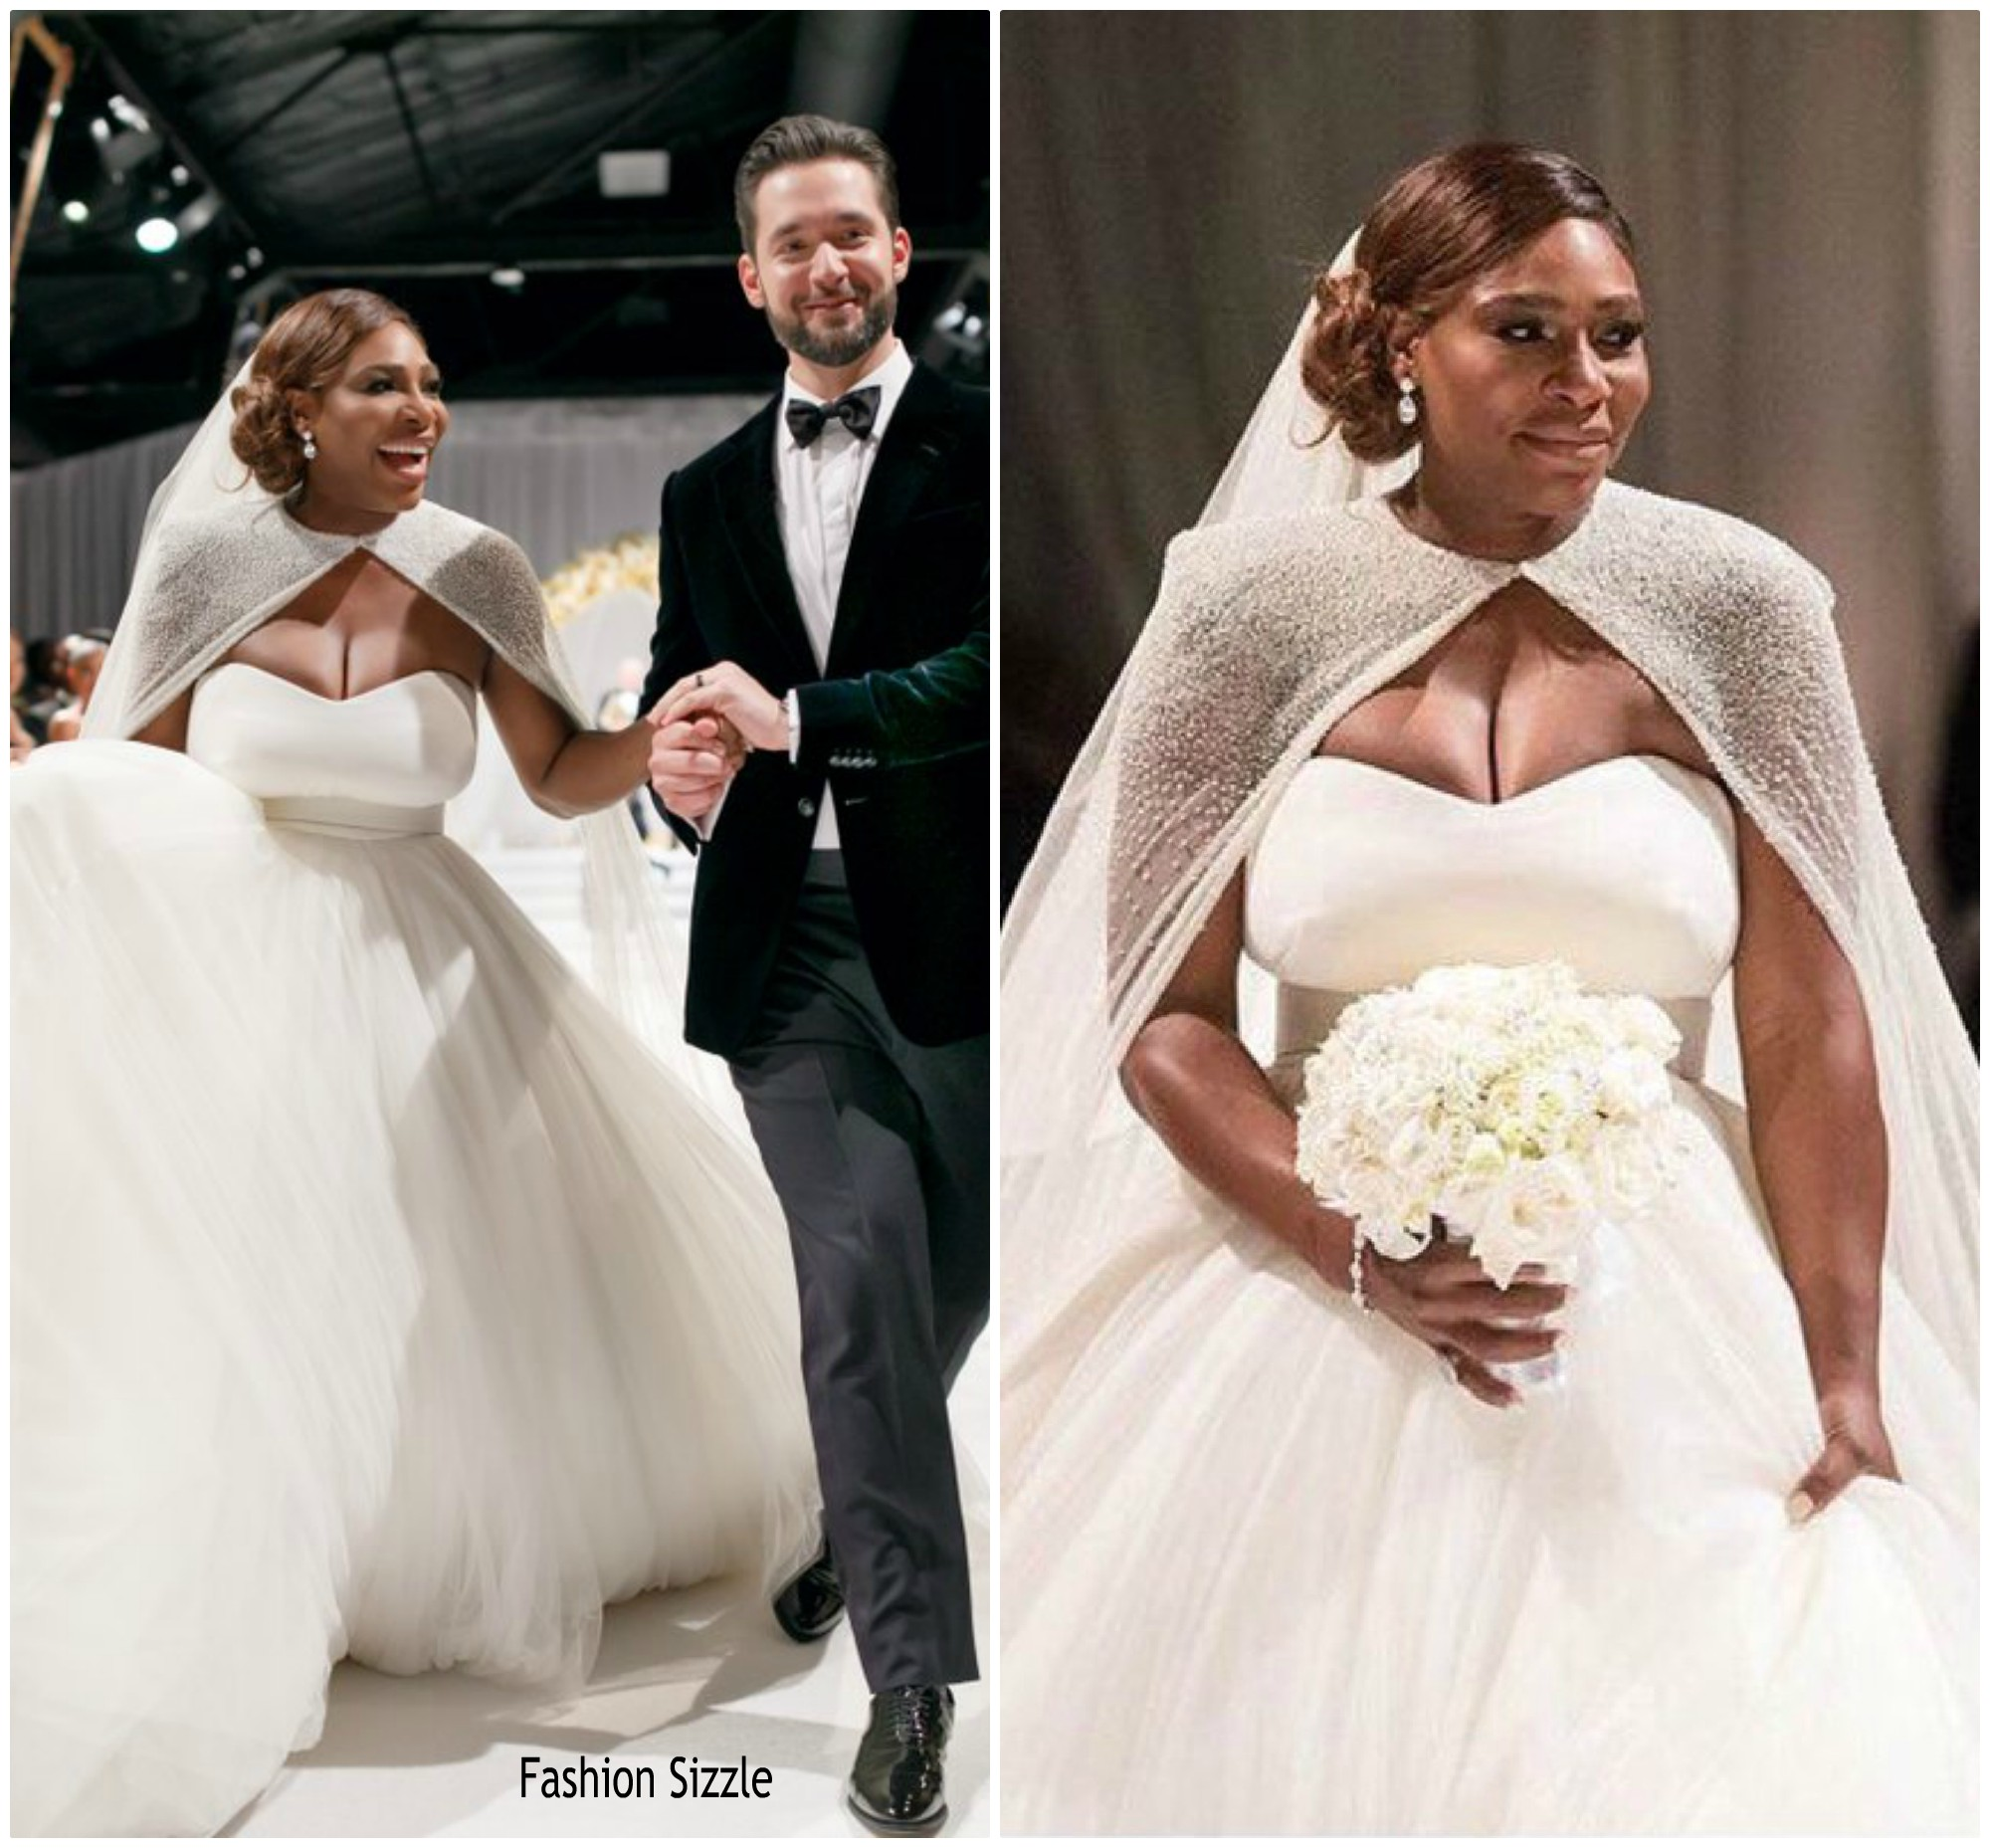 serena-williams-wears-alexander-mcqueen-for-her-wedding-to-alexis-ohanian